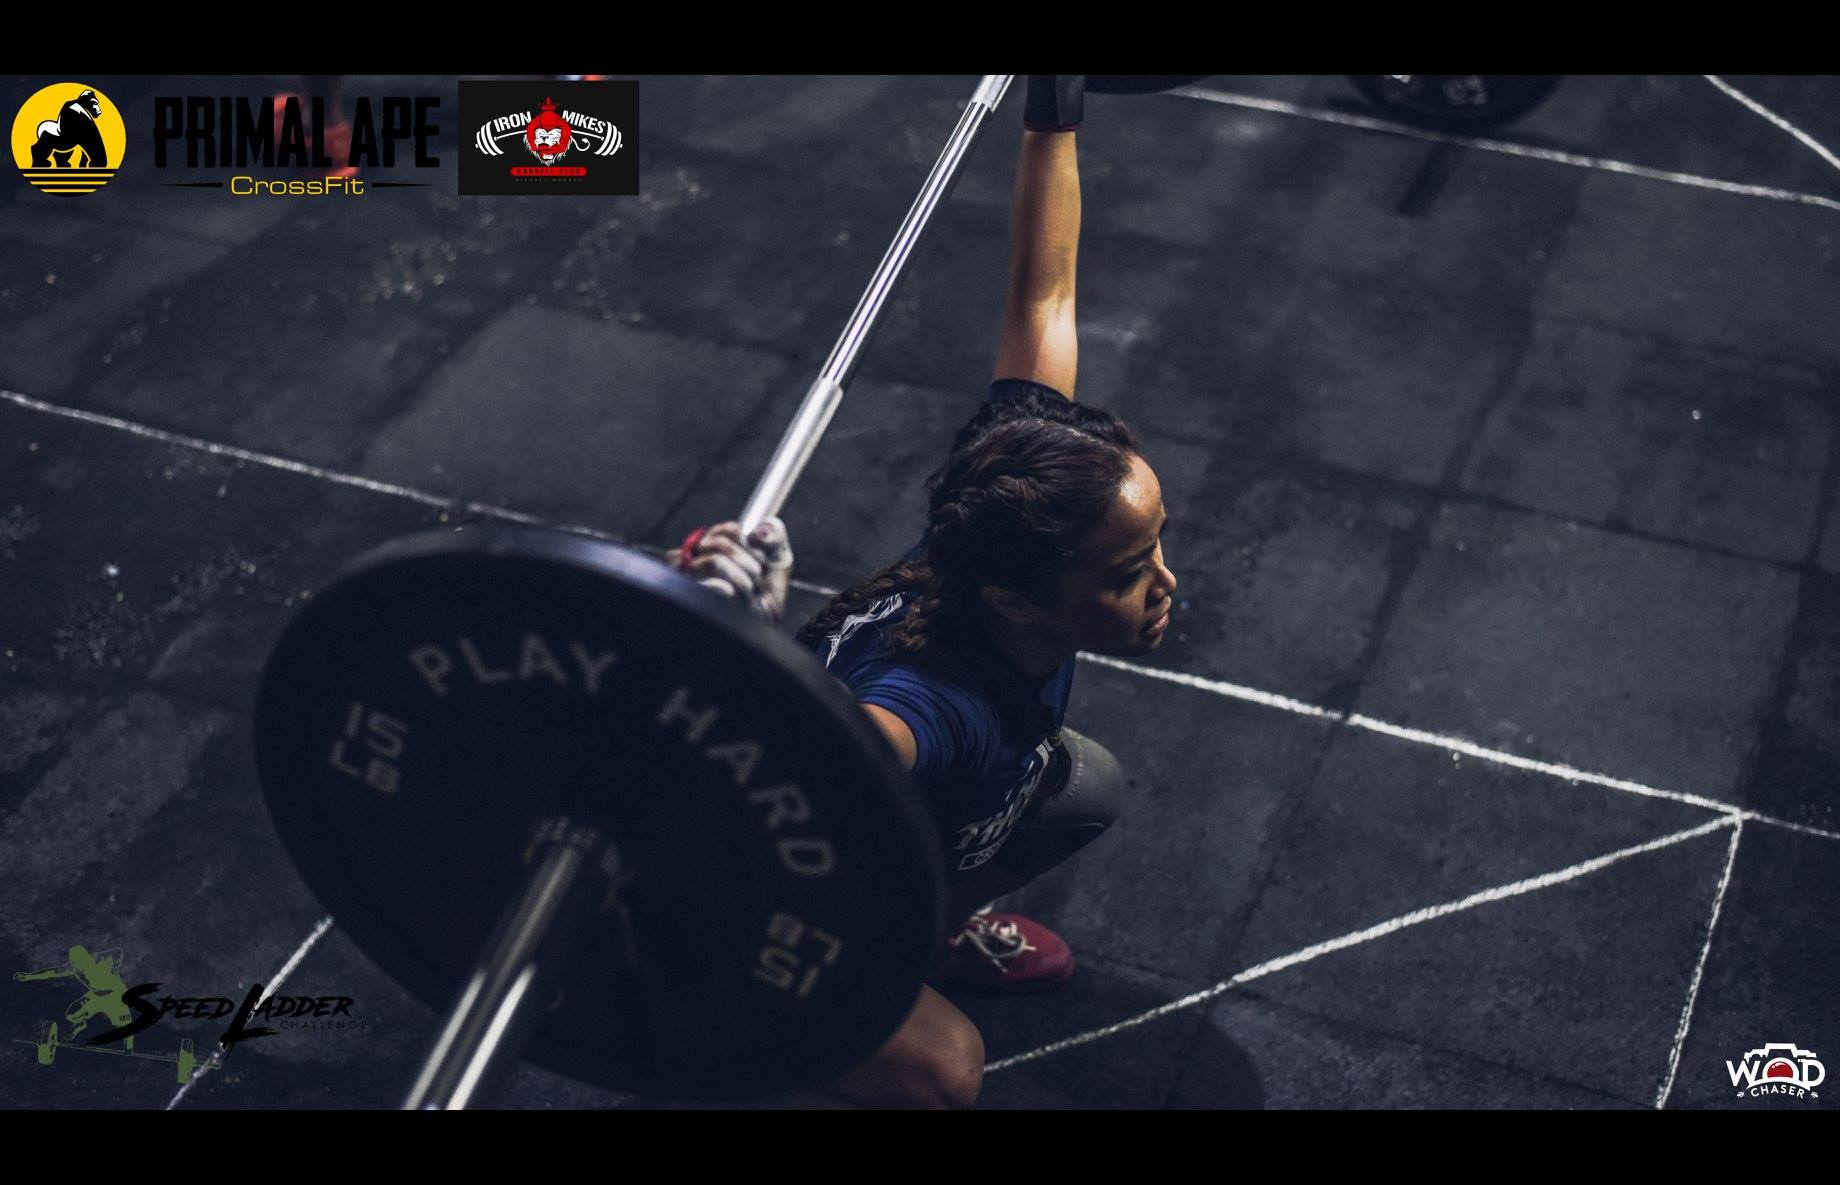 Dondi Quintans leads the Snatch - Women's Scaled division (Photo: WOD Chaser)